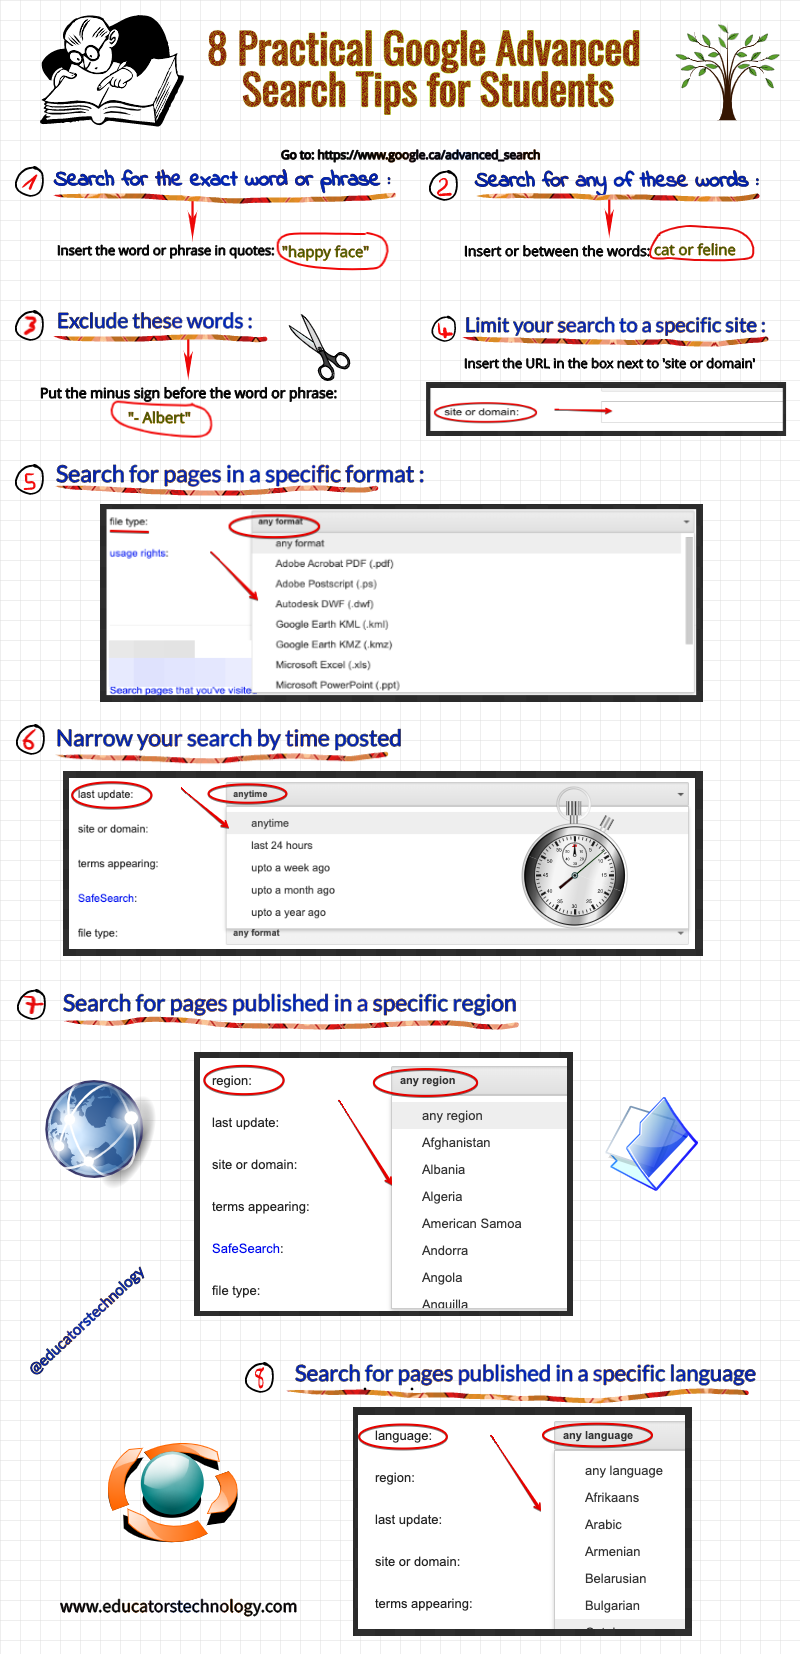 8 Practical Google Advanced Search Tips for Students